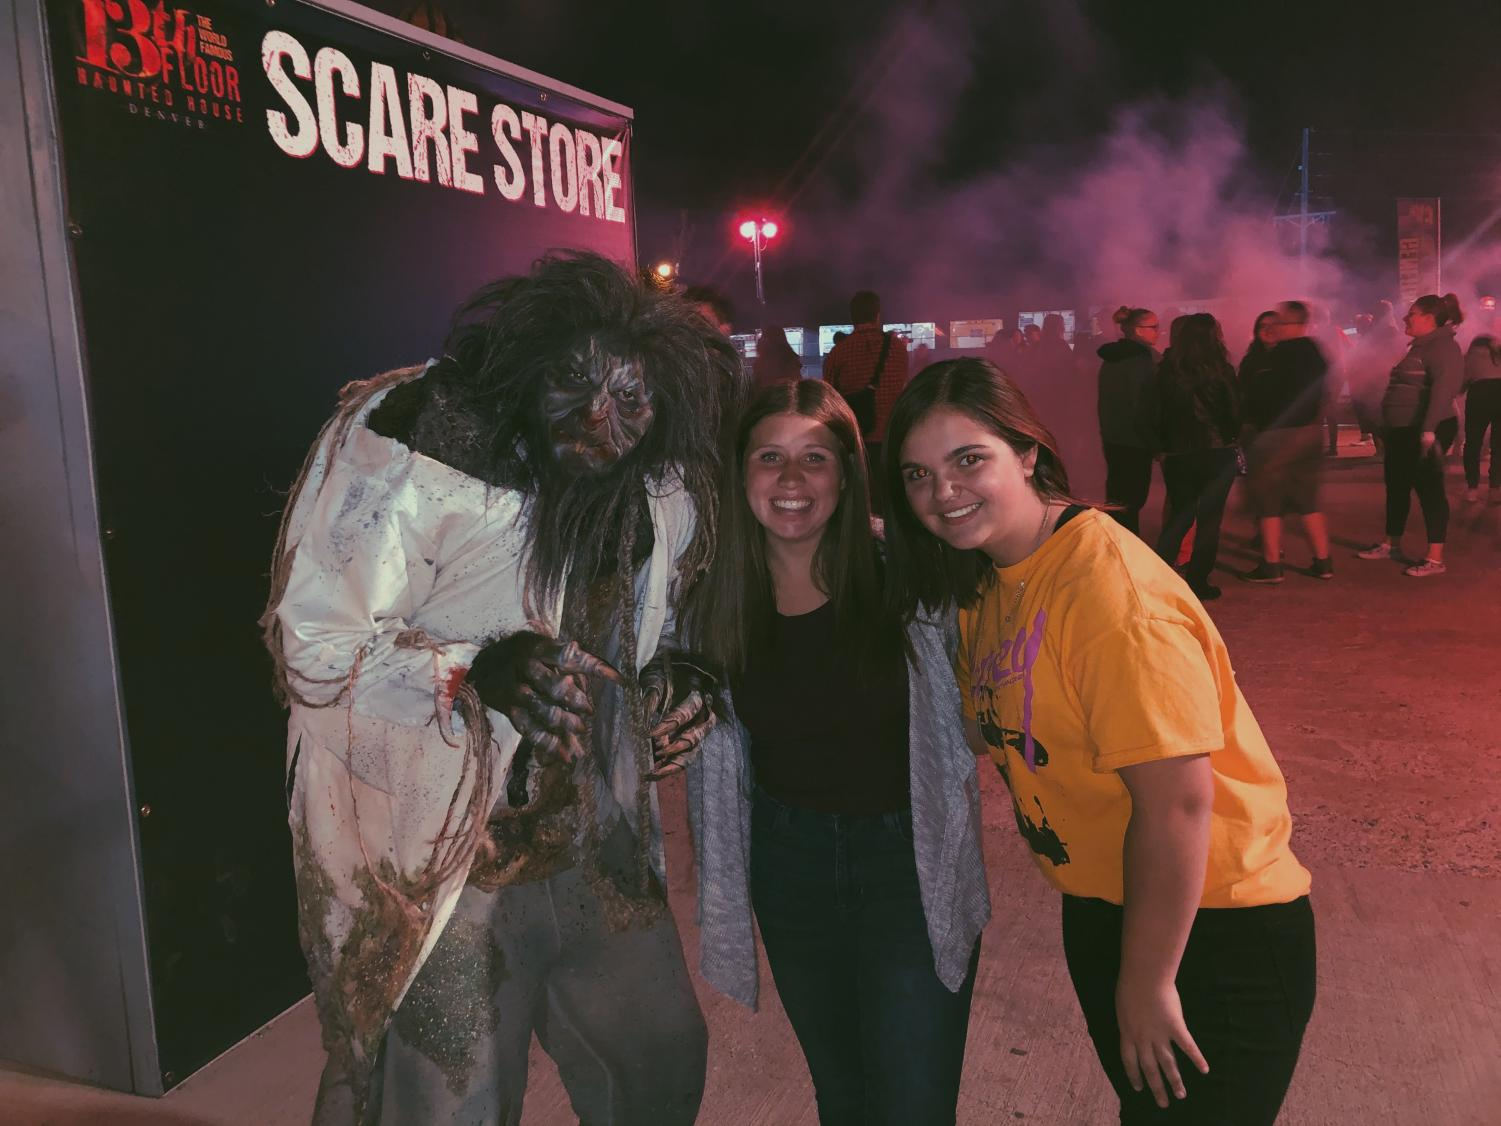 Scary Werewolf takes a quick break to mug for the camera with sophomores Ellie Woodward and Graciela Fischer at Denvers 13th Floor.